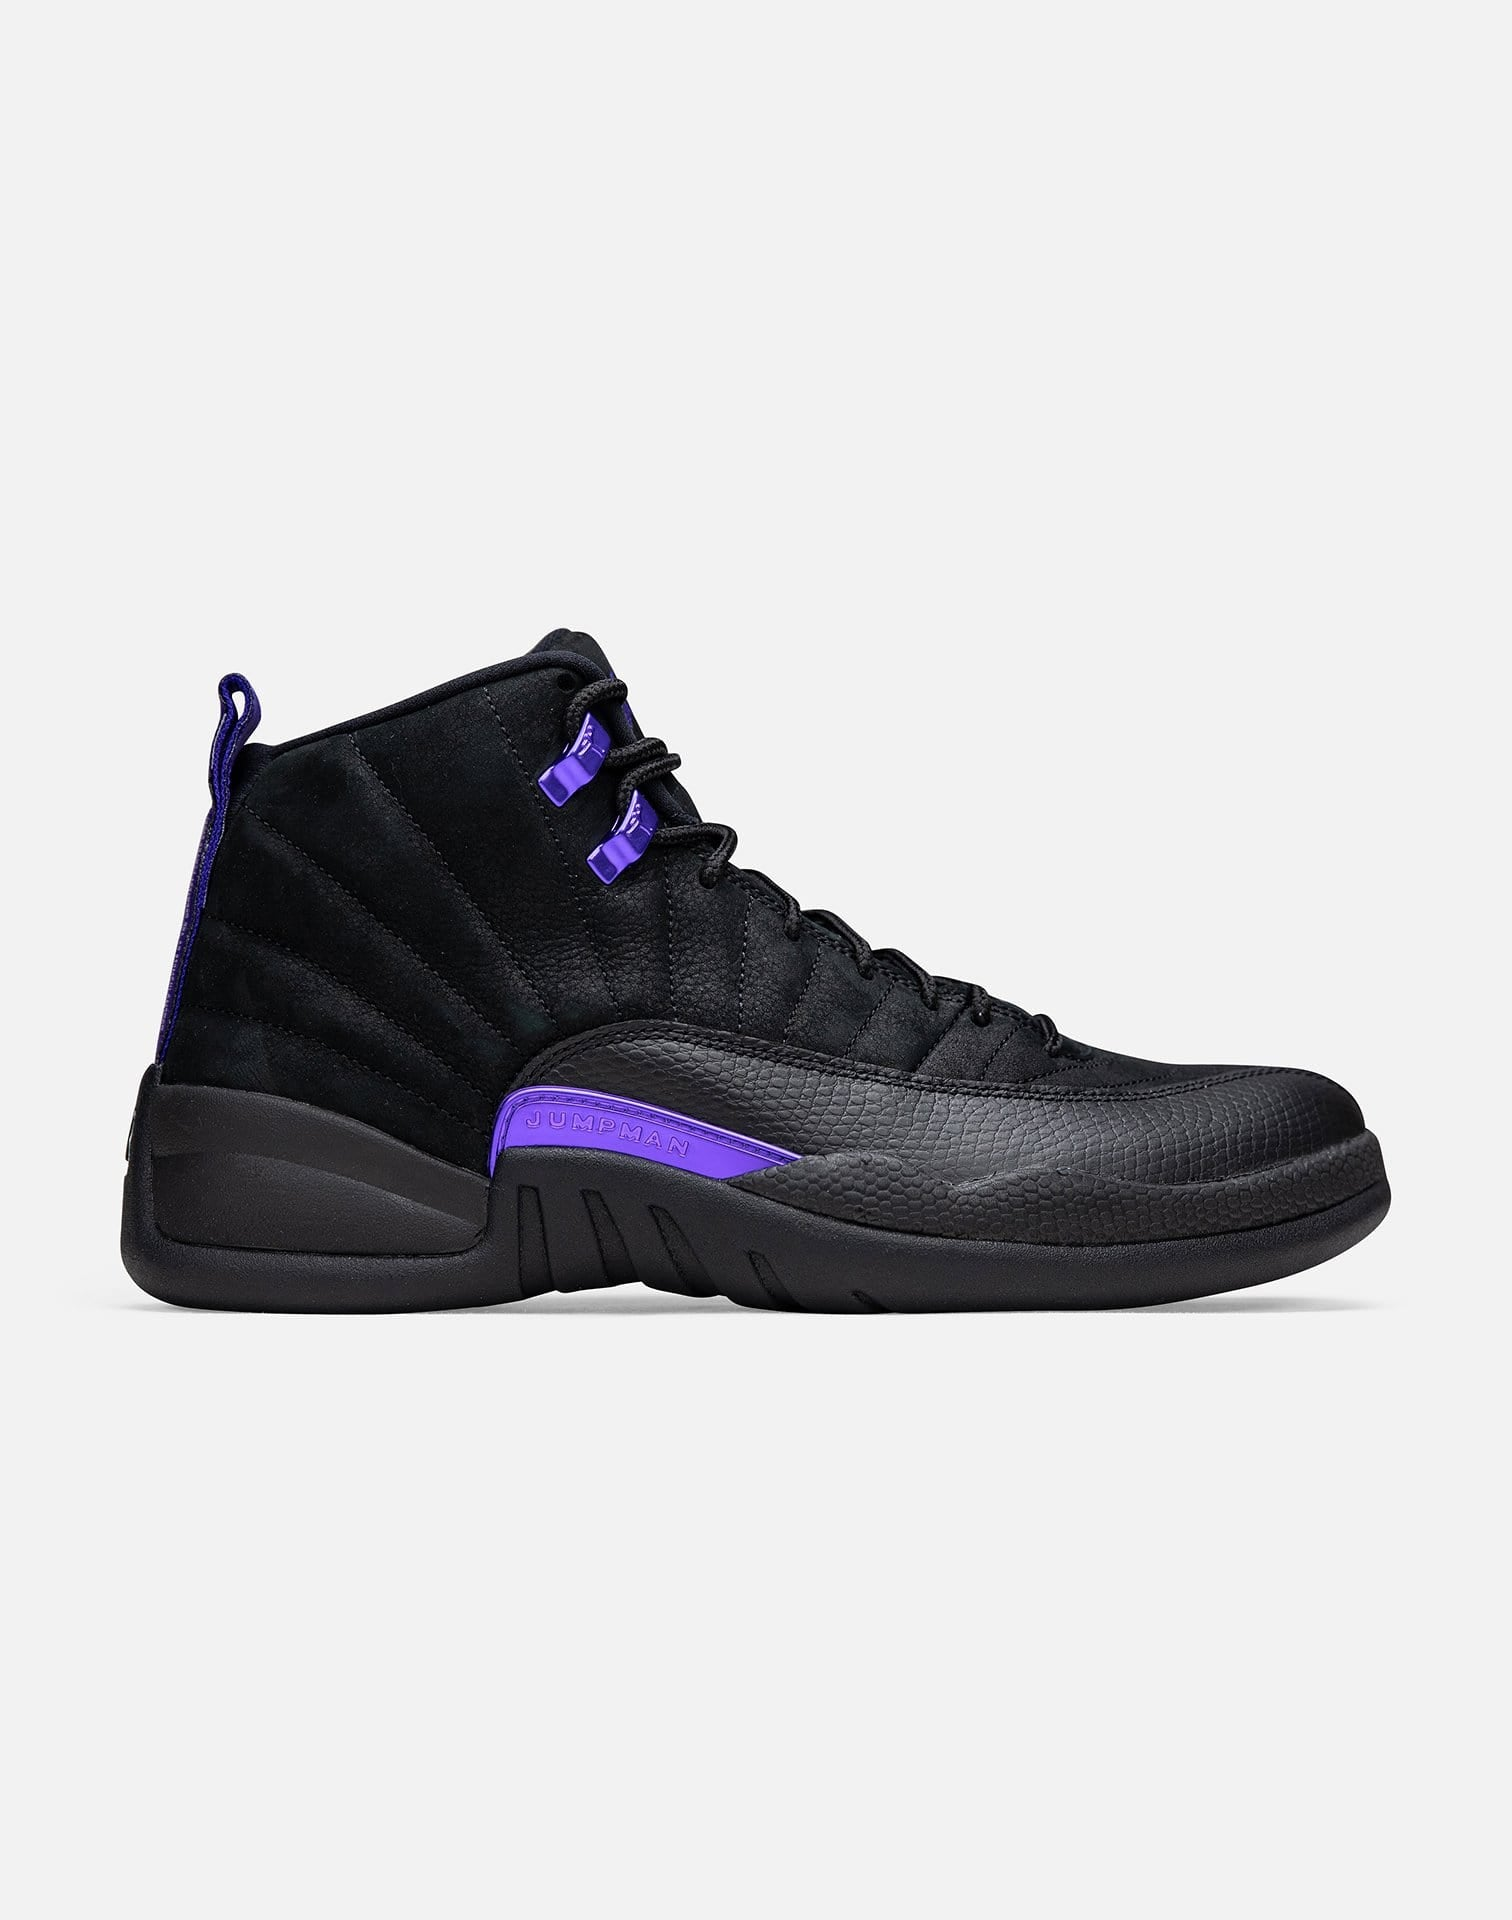 Jordan AIR JORDAN RETRO 12 'DARK CONCORD'